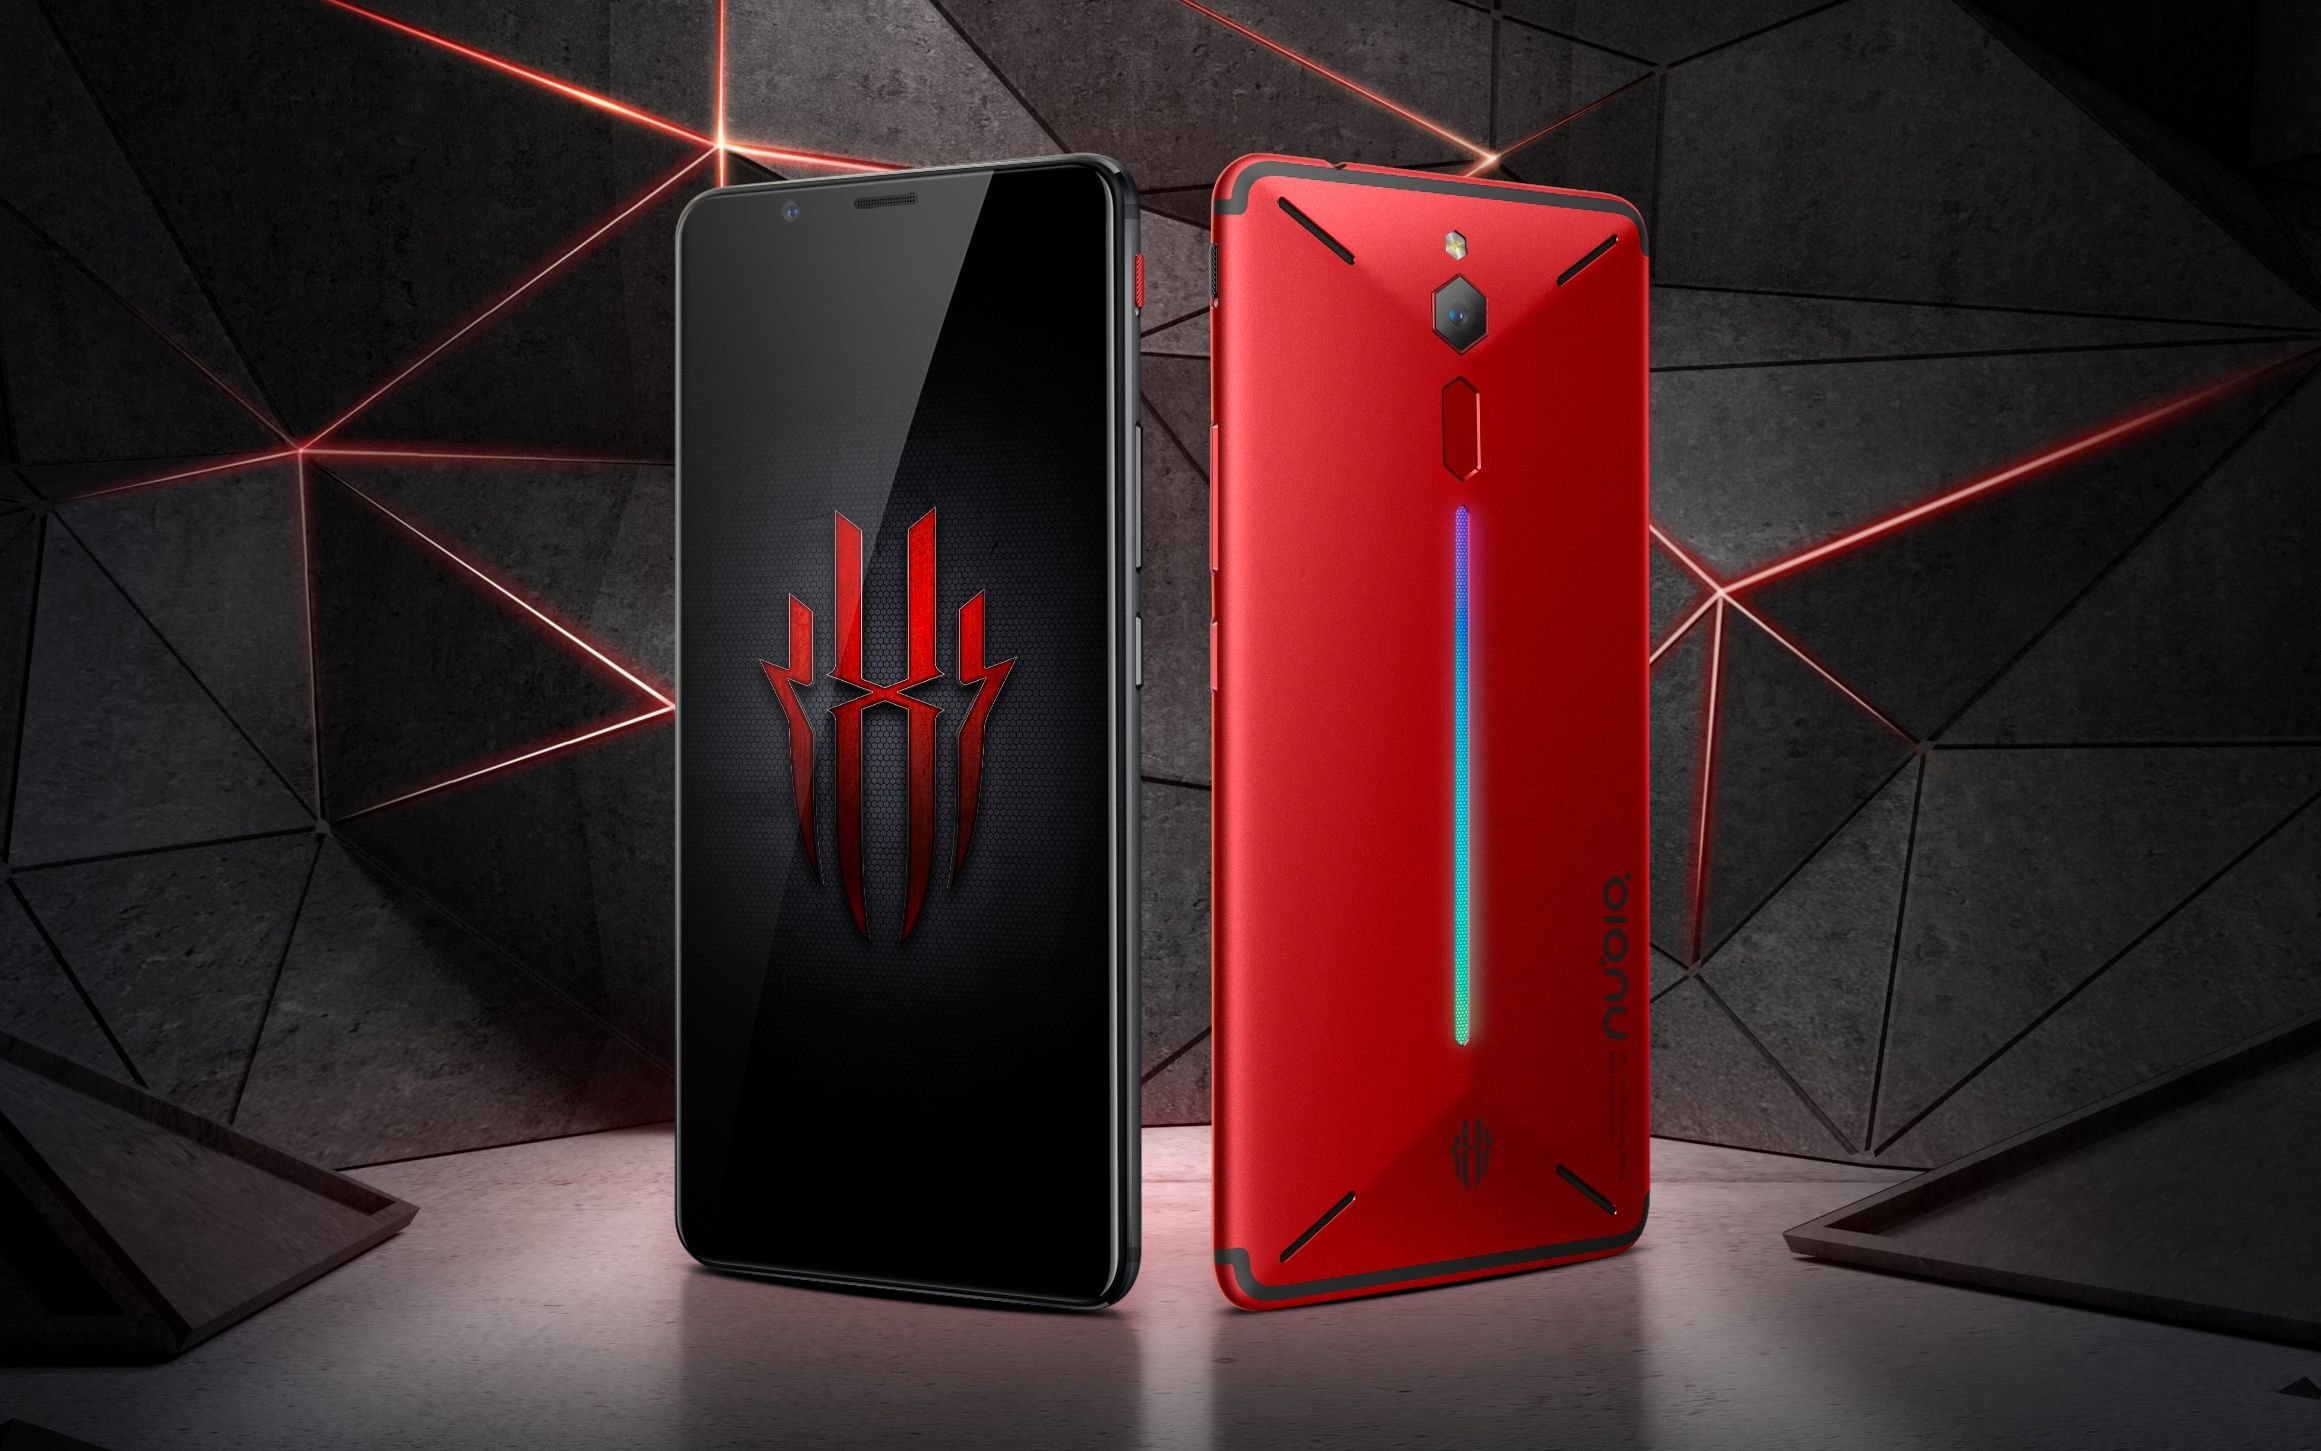 nubia-red-mars-gaming-phone10-gb